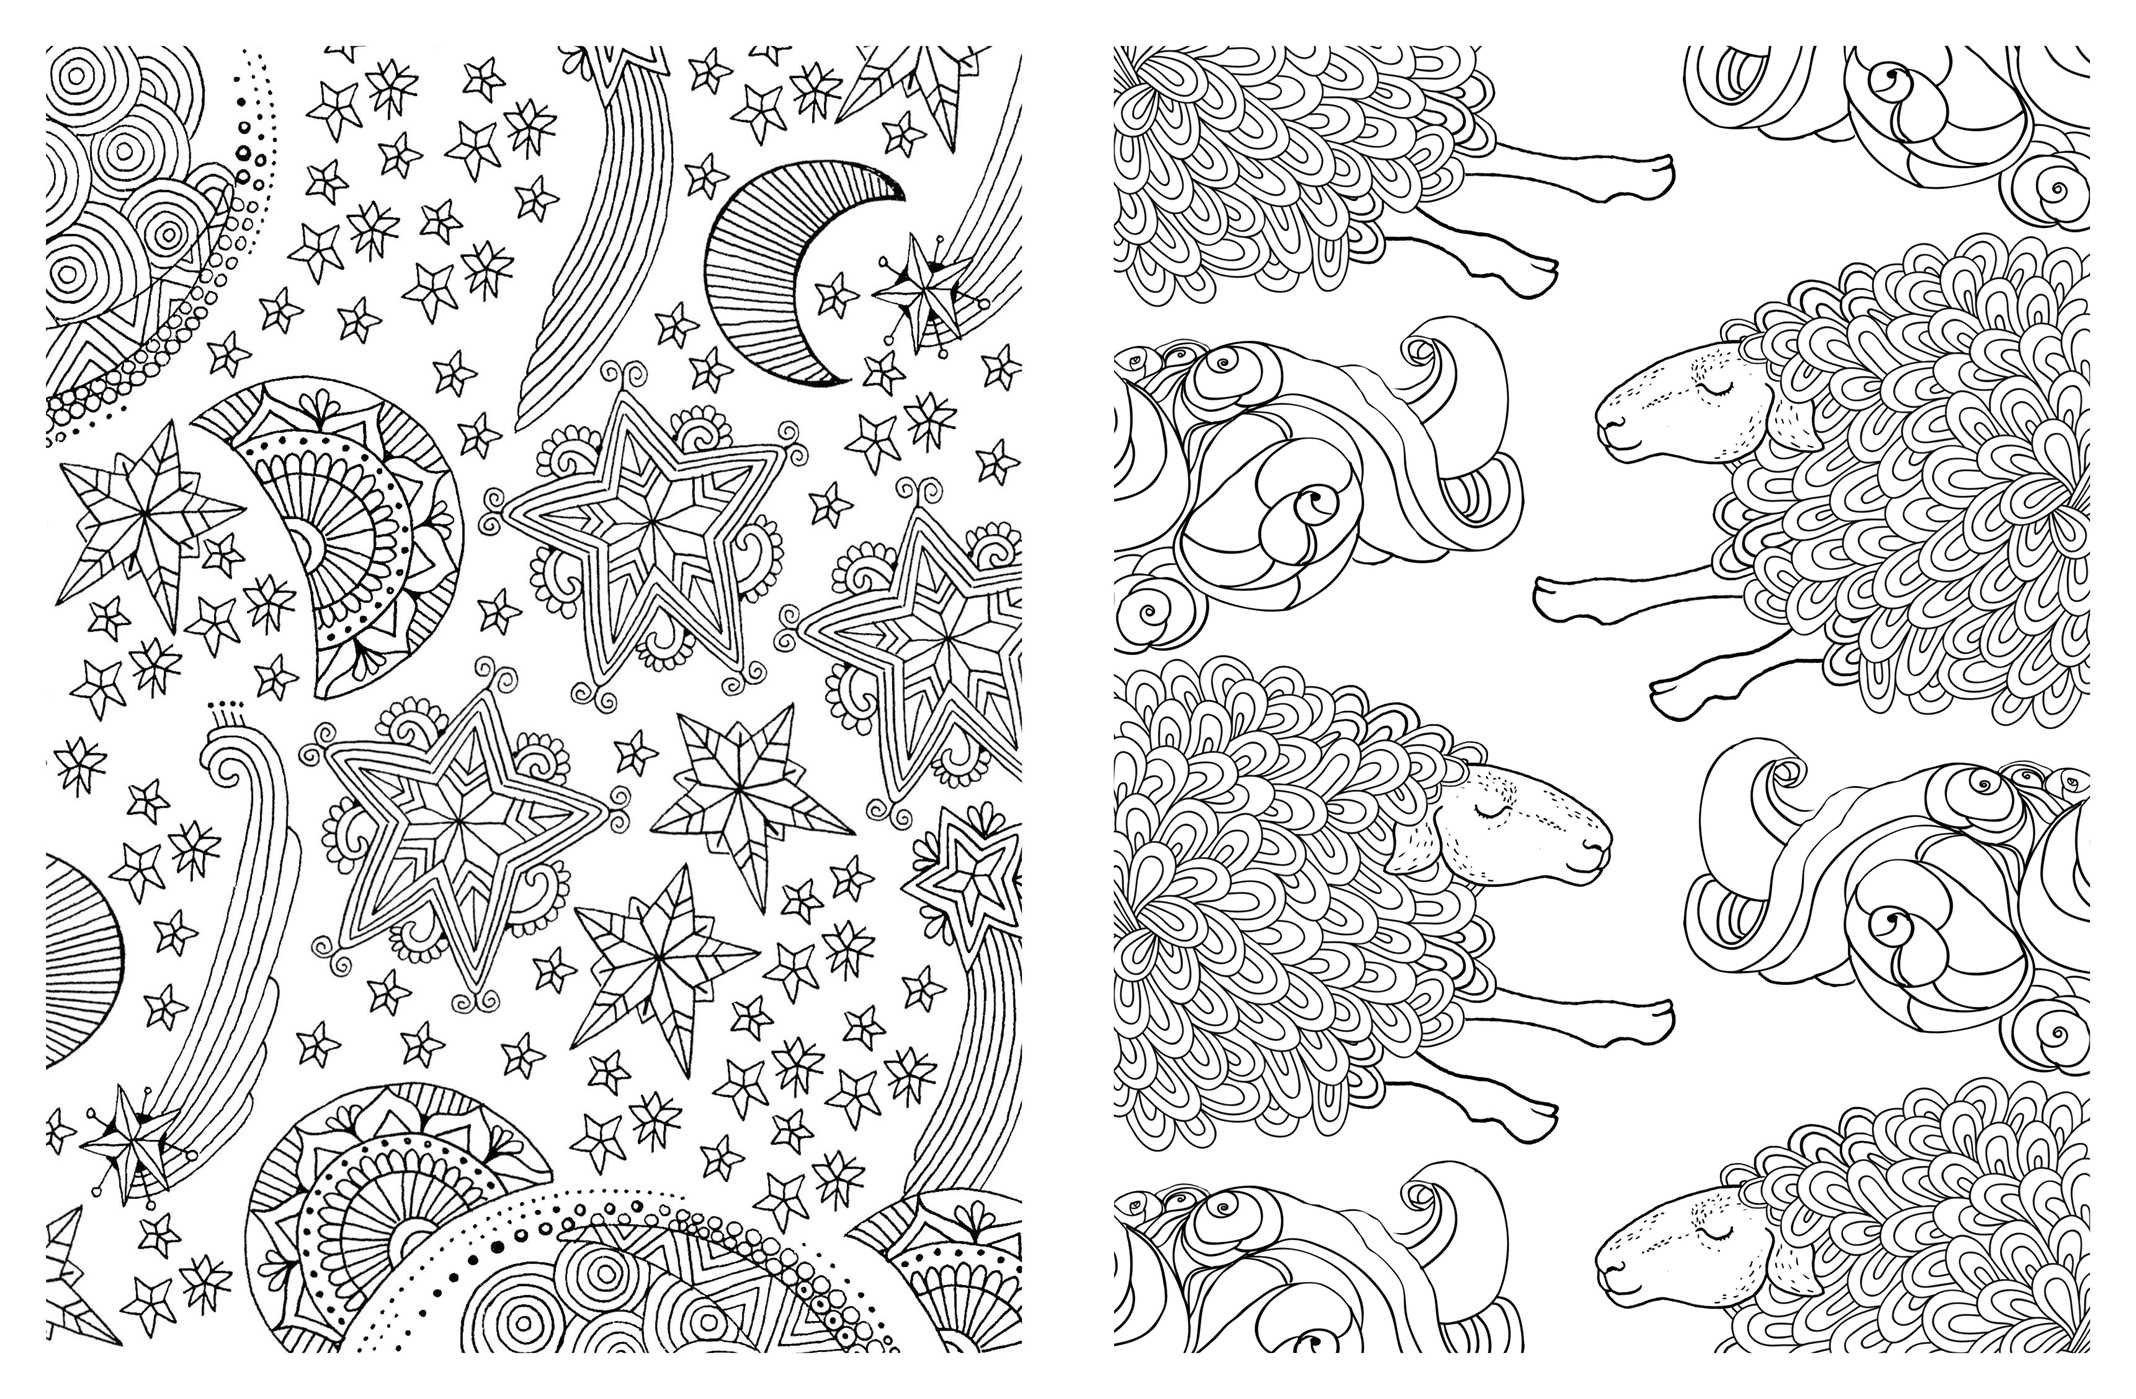 - Amazon.com: Posh Adult Coloring Book: Soothing Designs For Fun